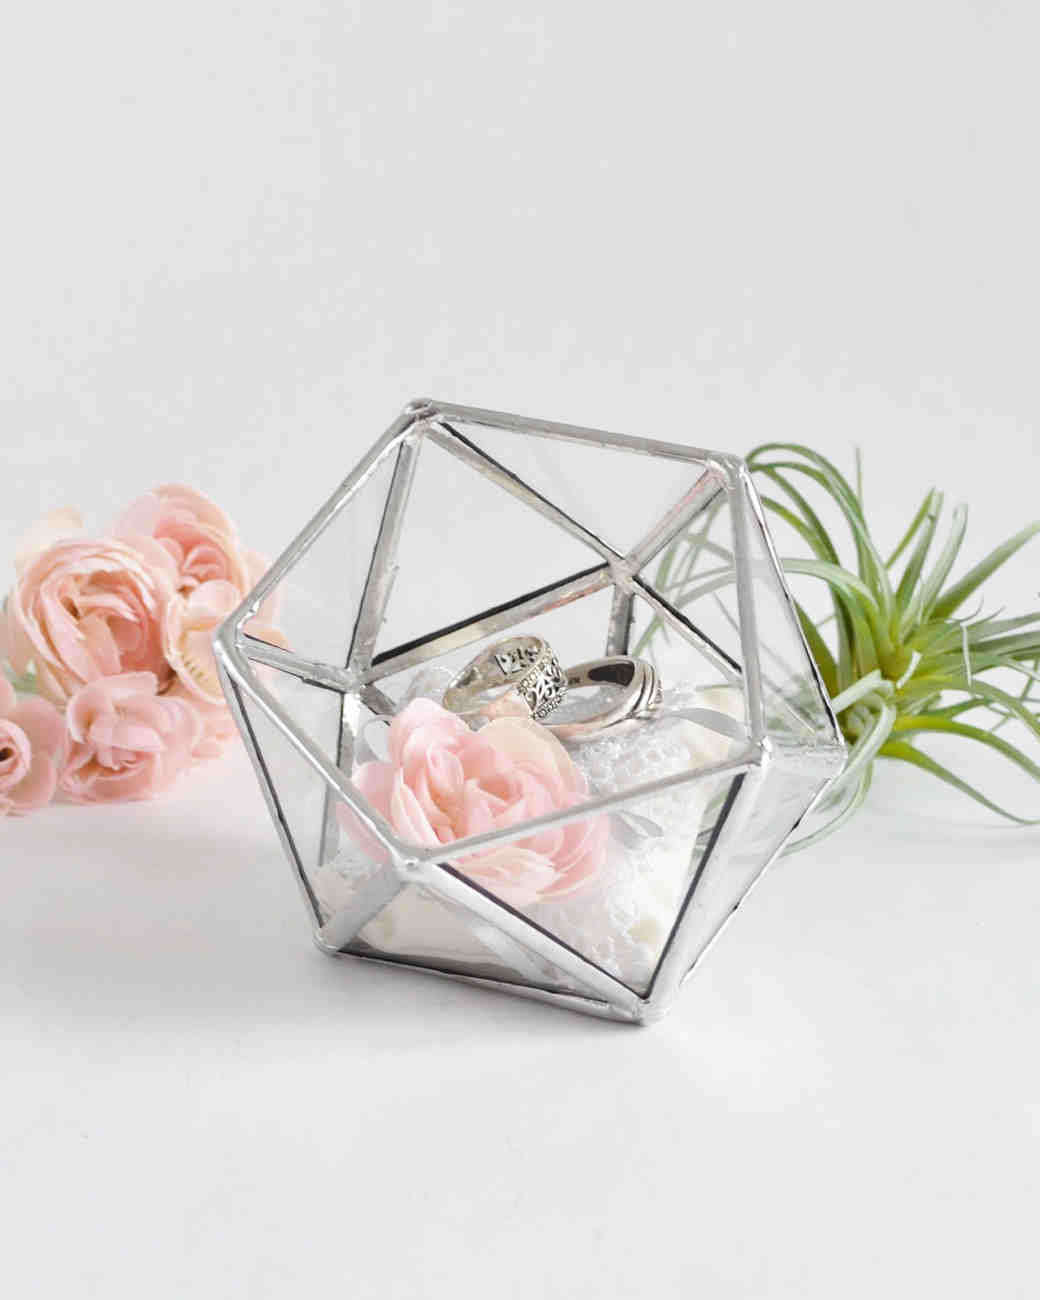 unique-ring-box-terrarium-0316.jpg